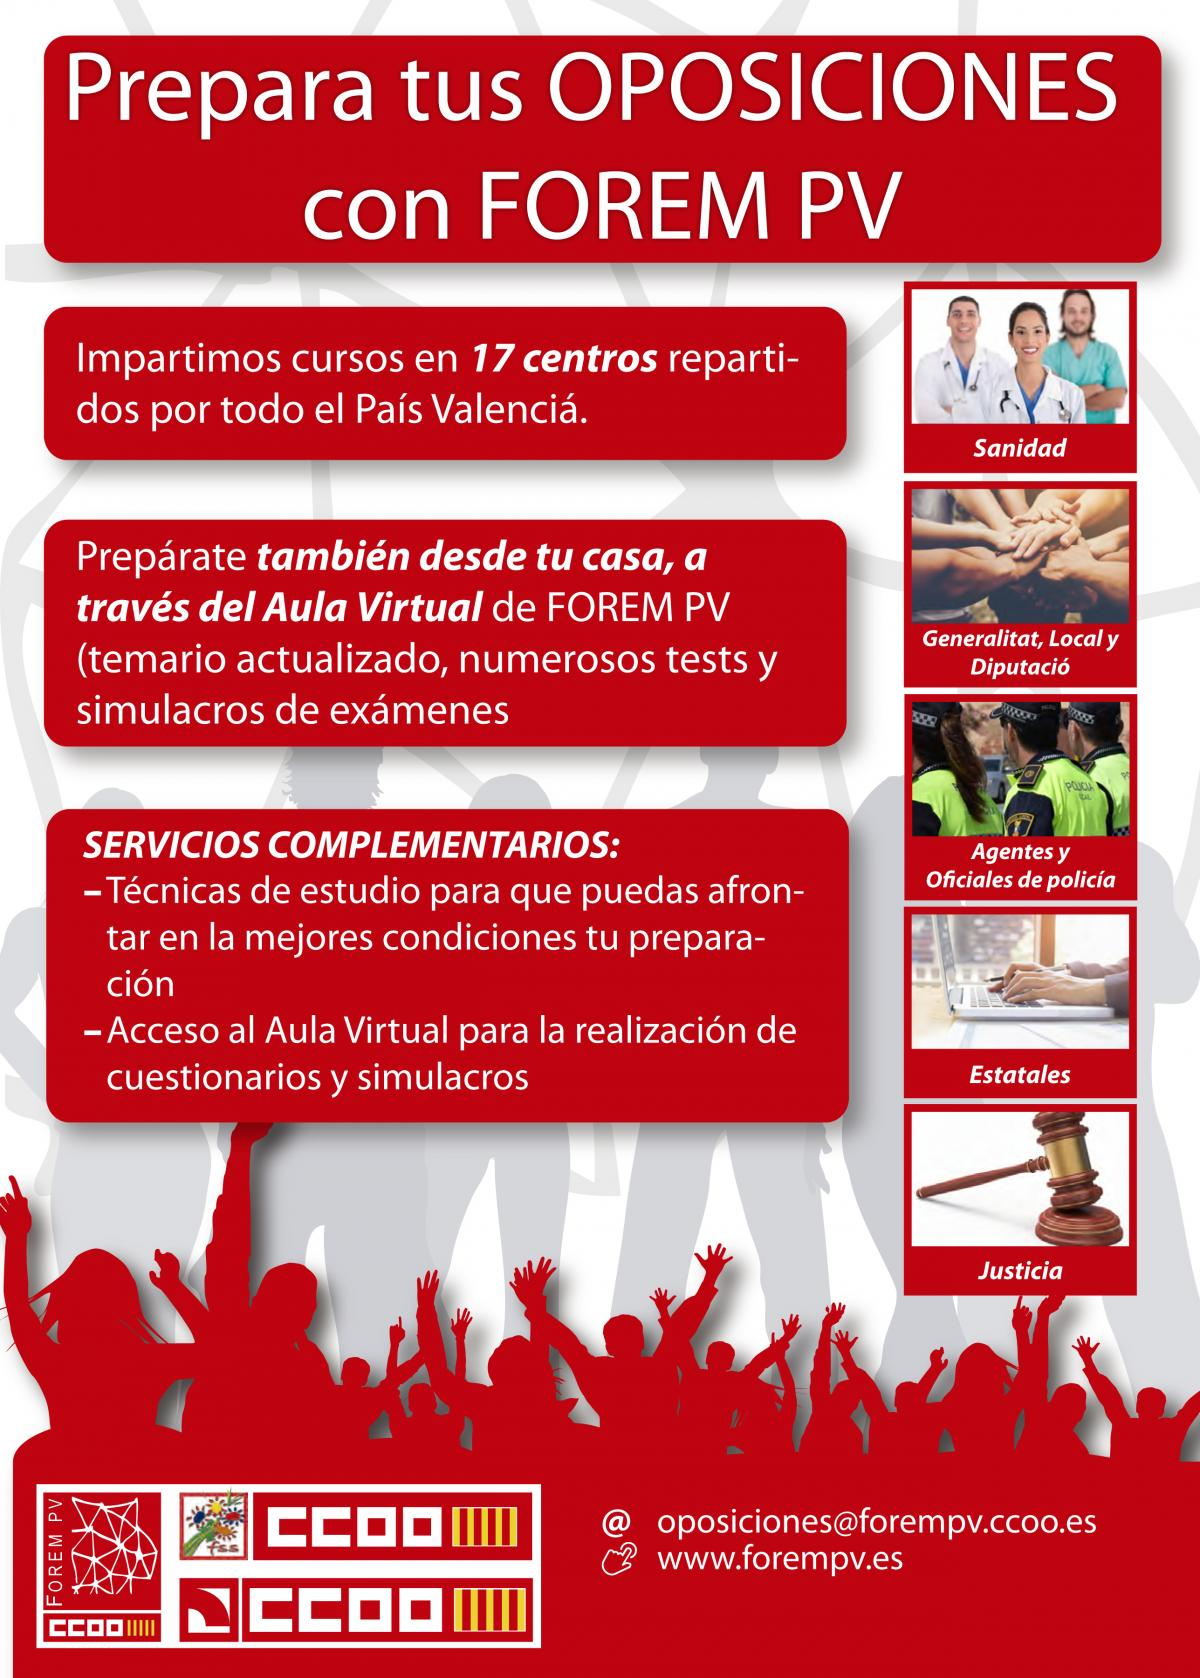 Cartell oferta oposicions FOREM PV